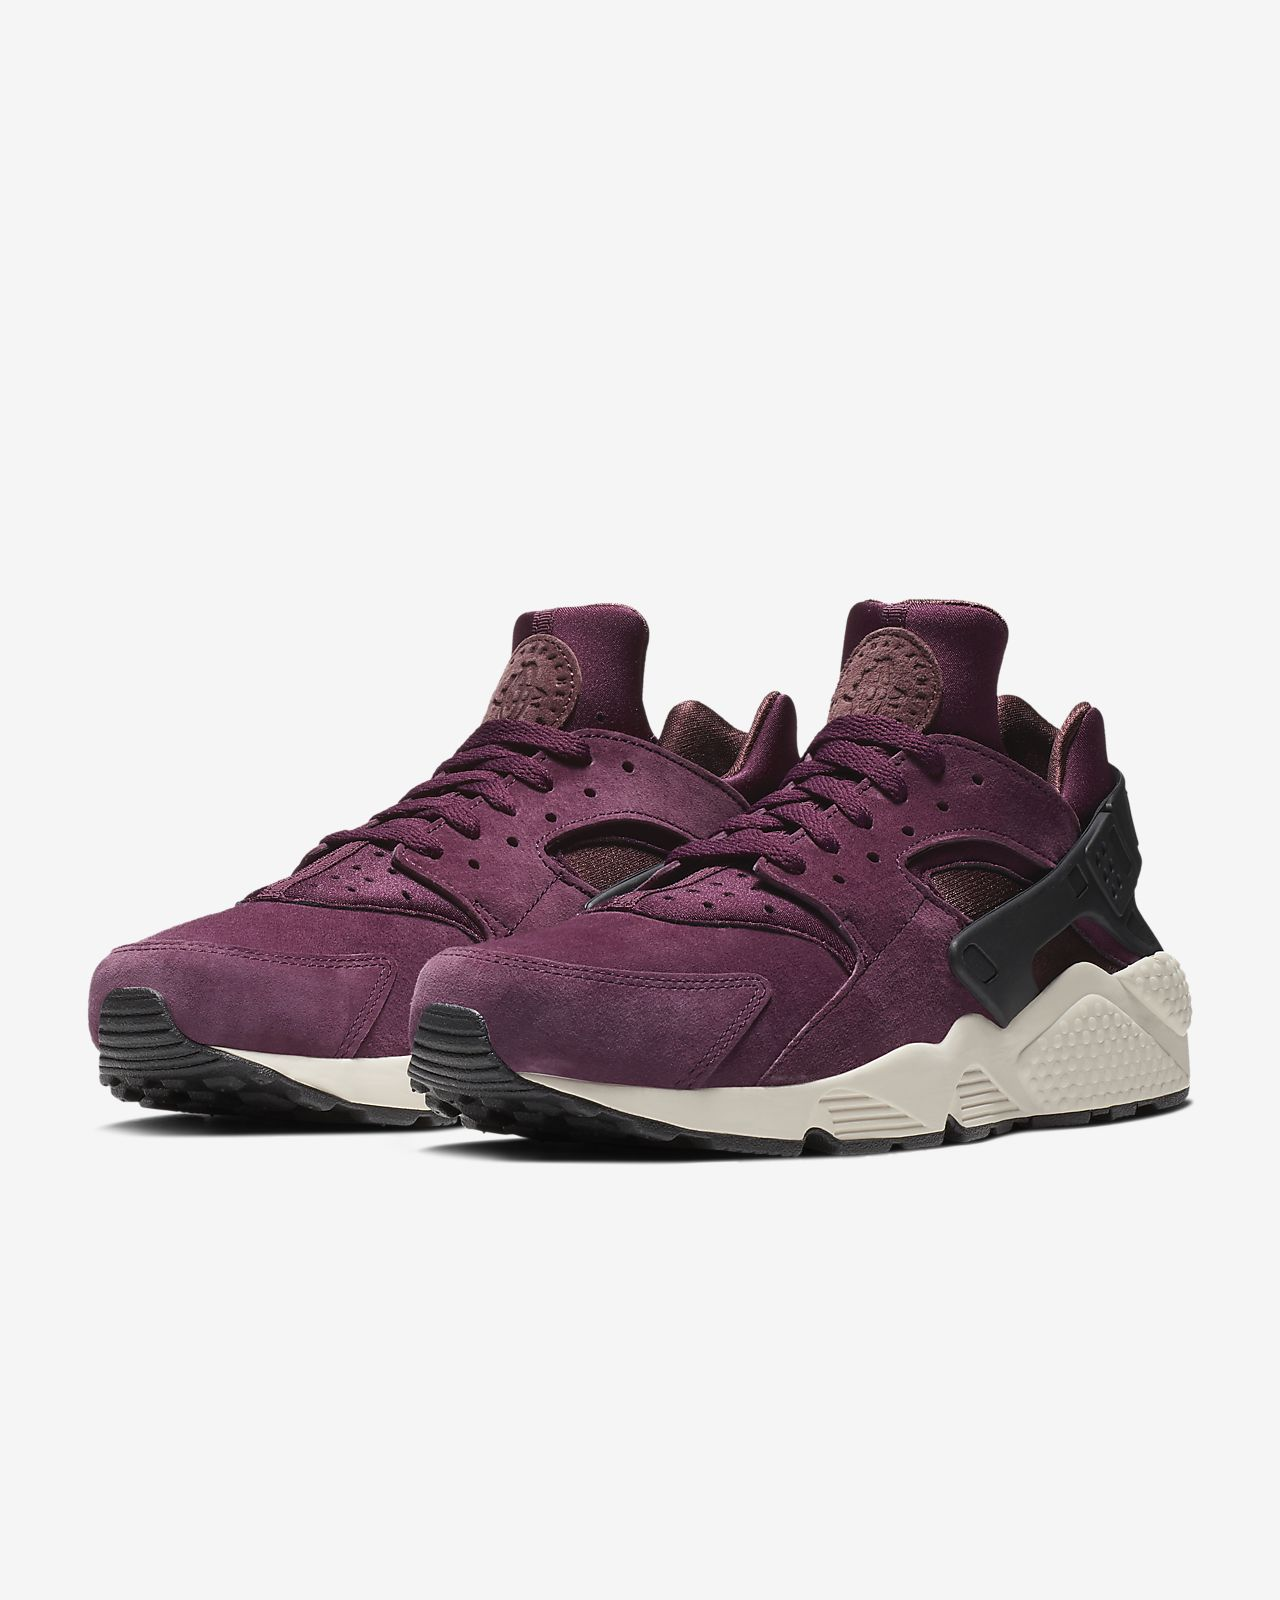 in stock be2ee a46b7 ... Nike Air Huarache Premium Men s Shoe